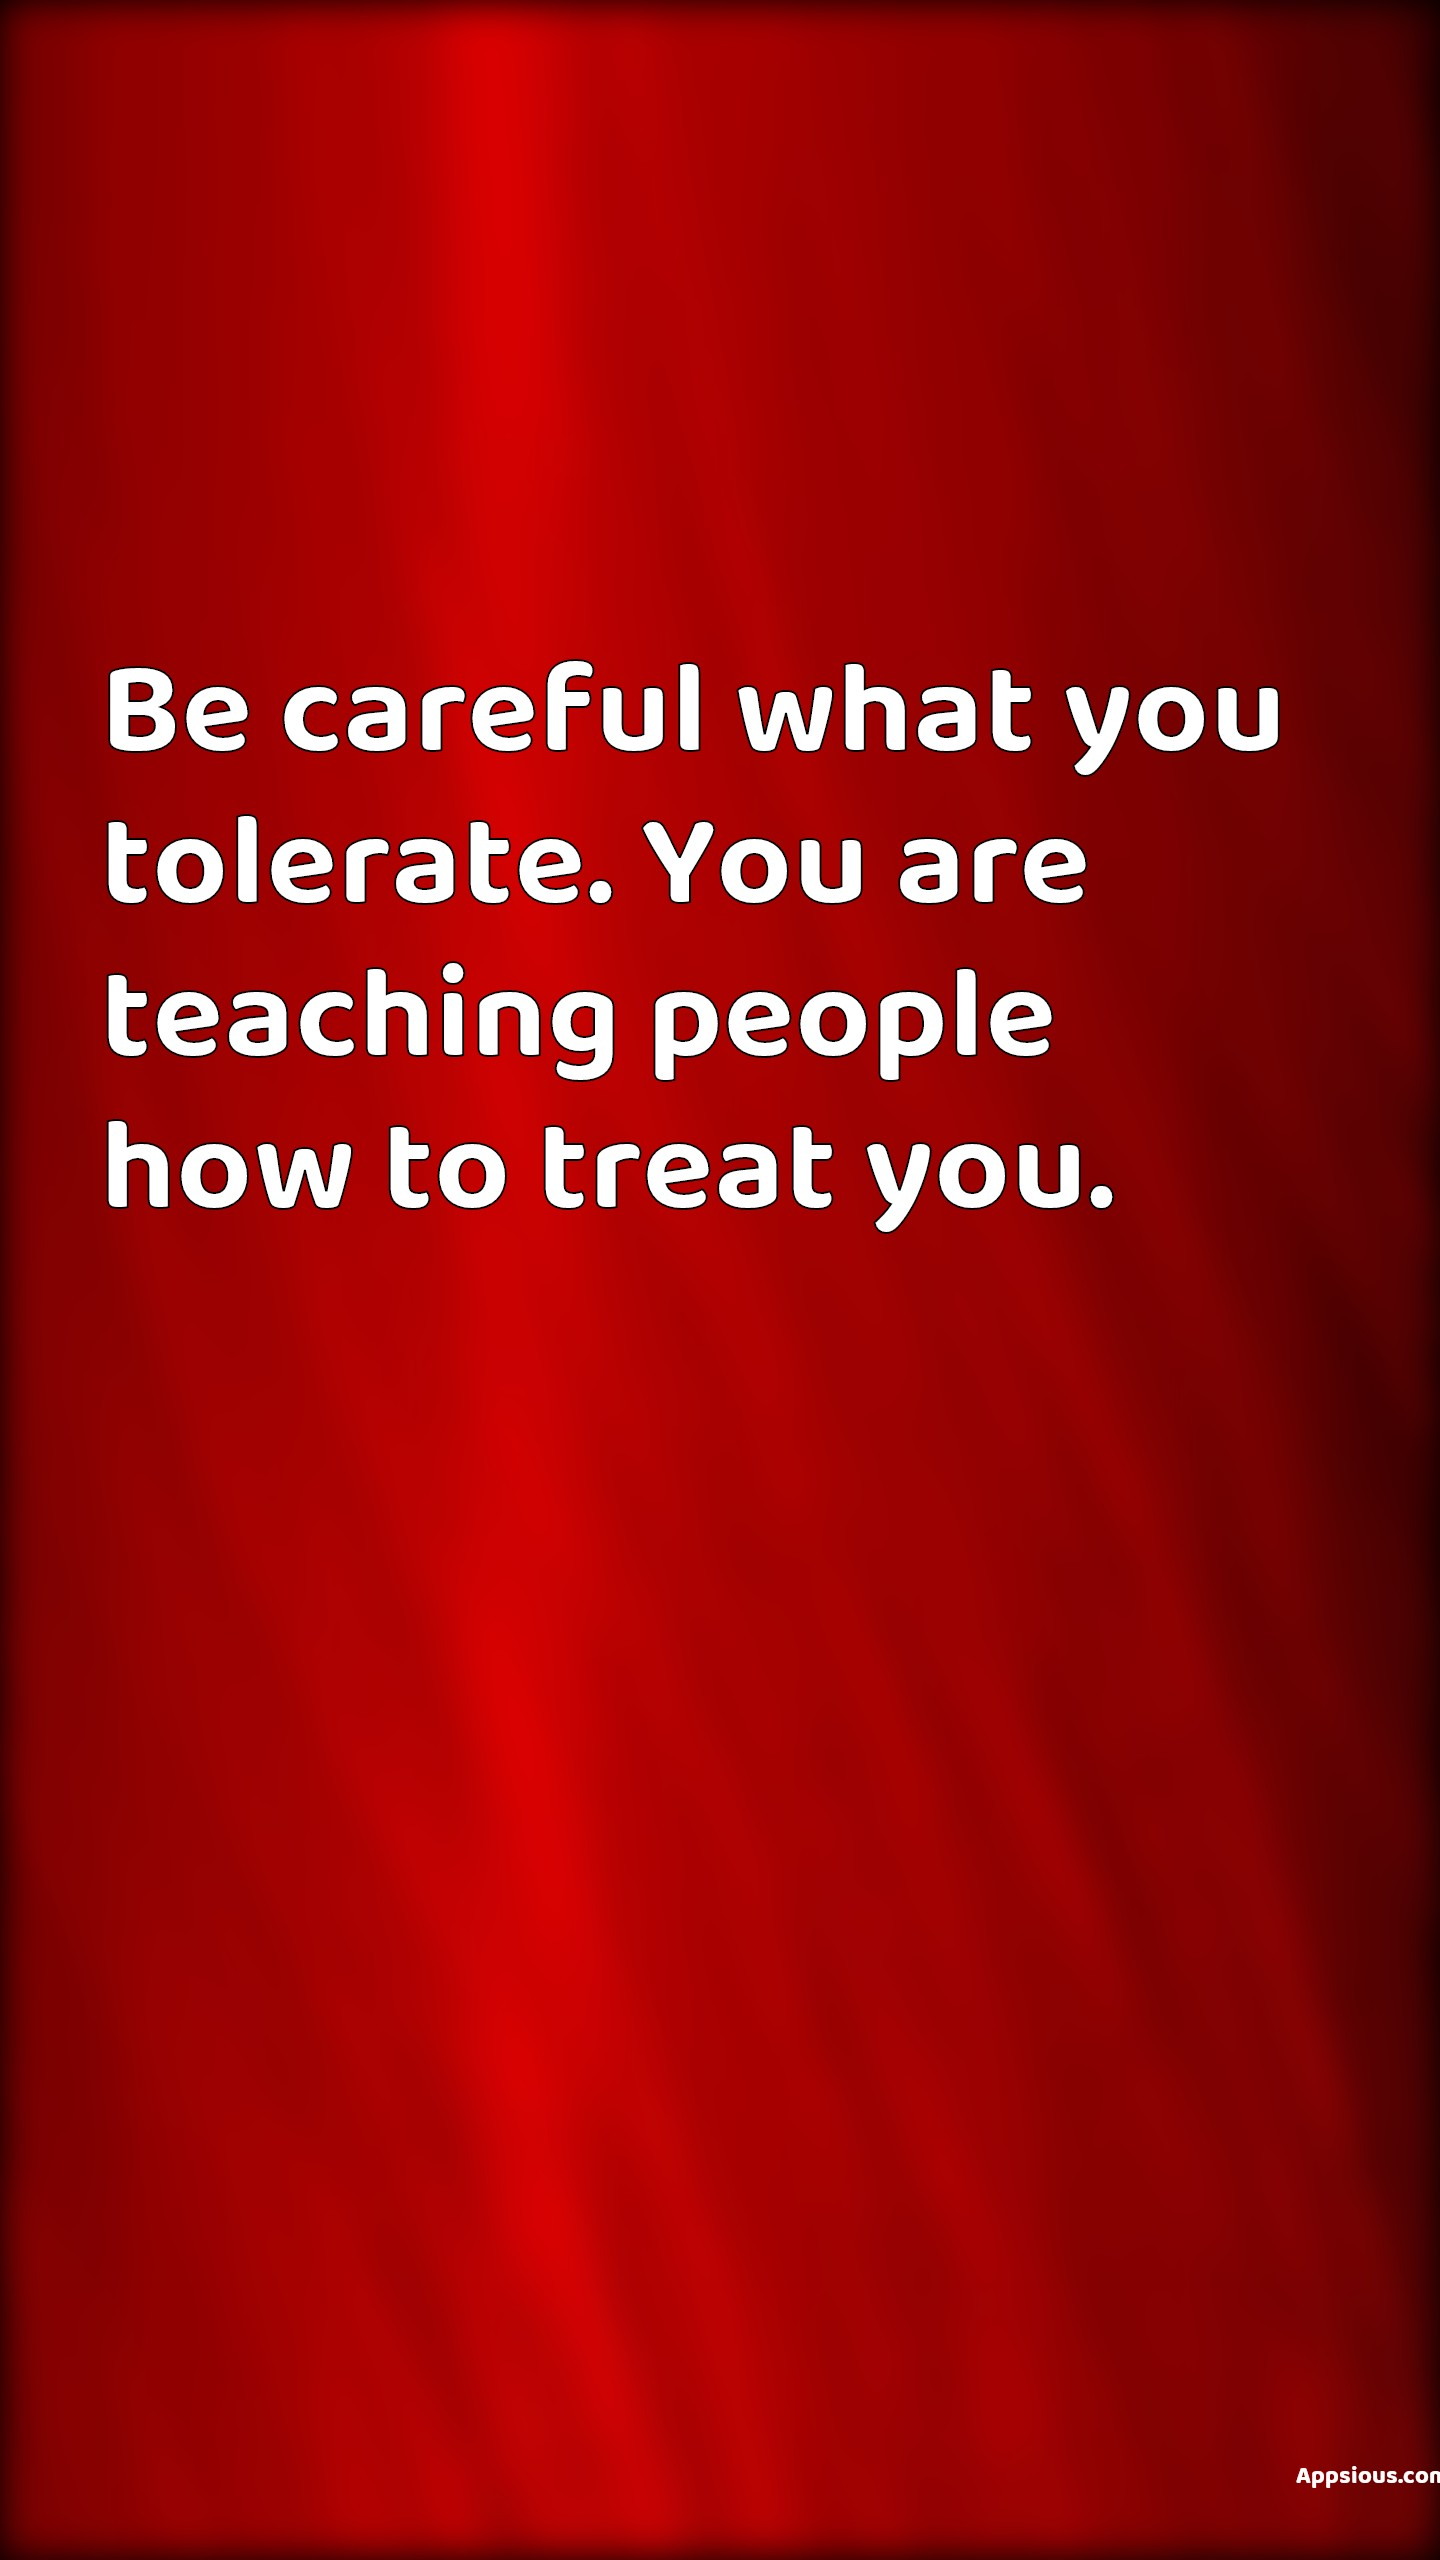 Be careful what you tolerate. You are teaching people how to treat you.